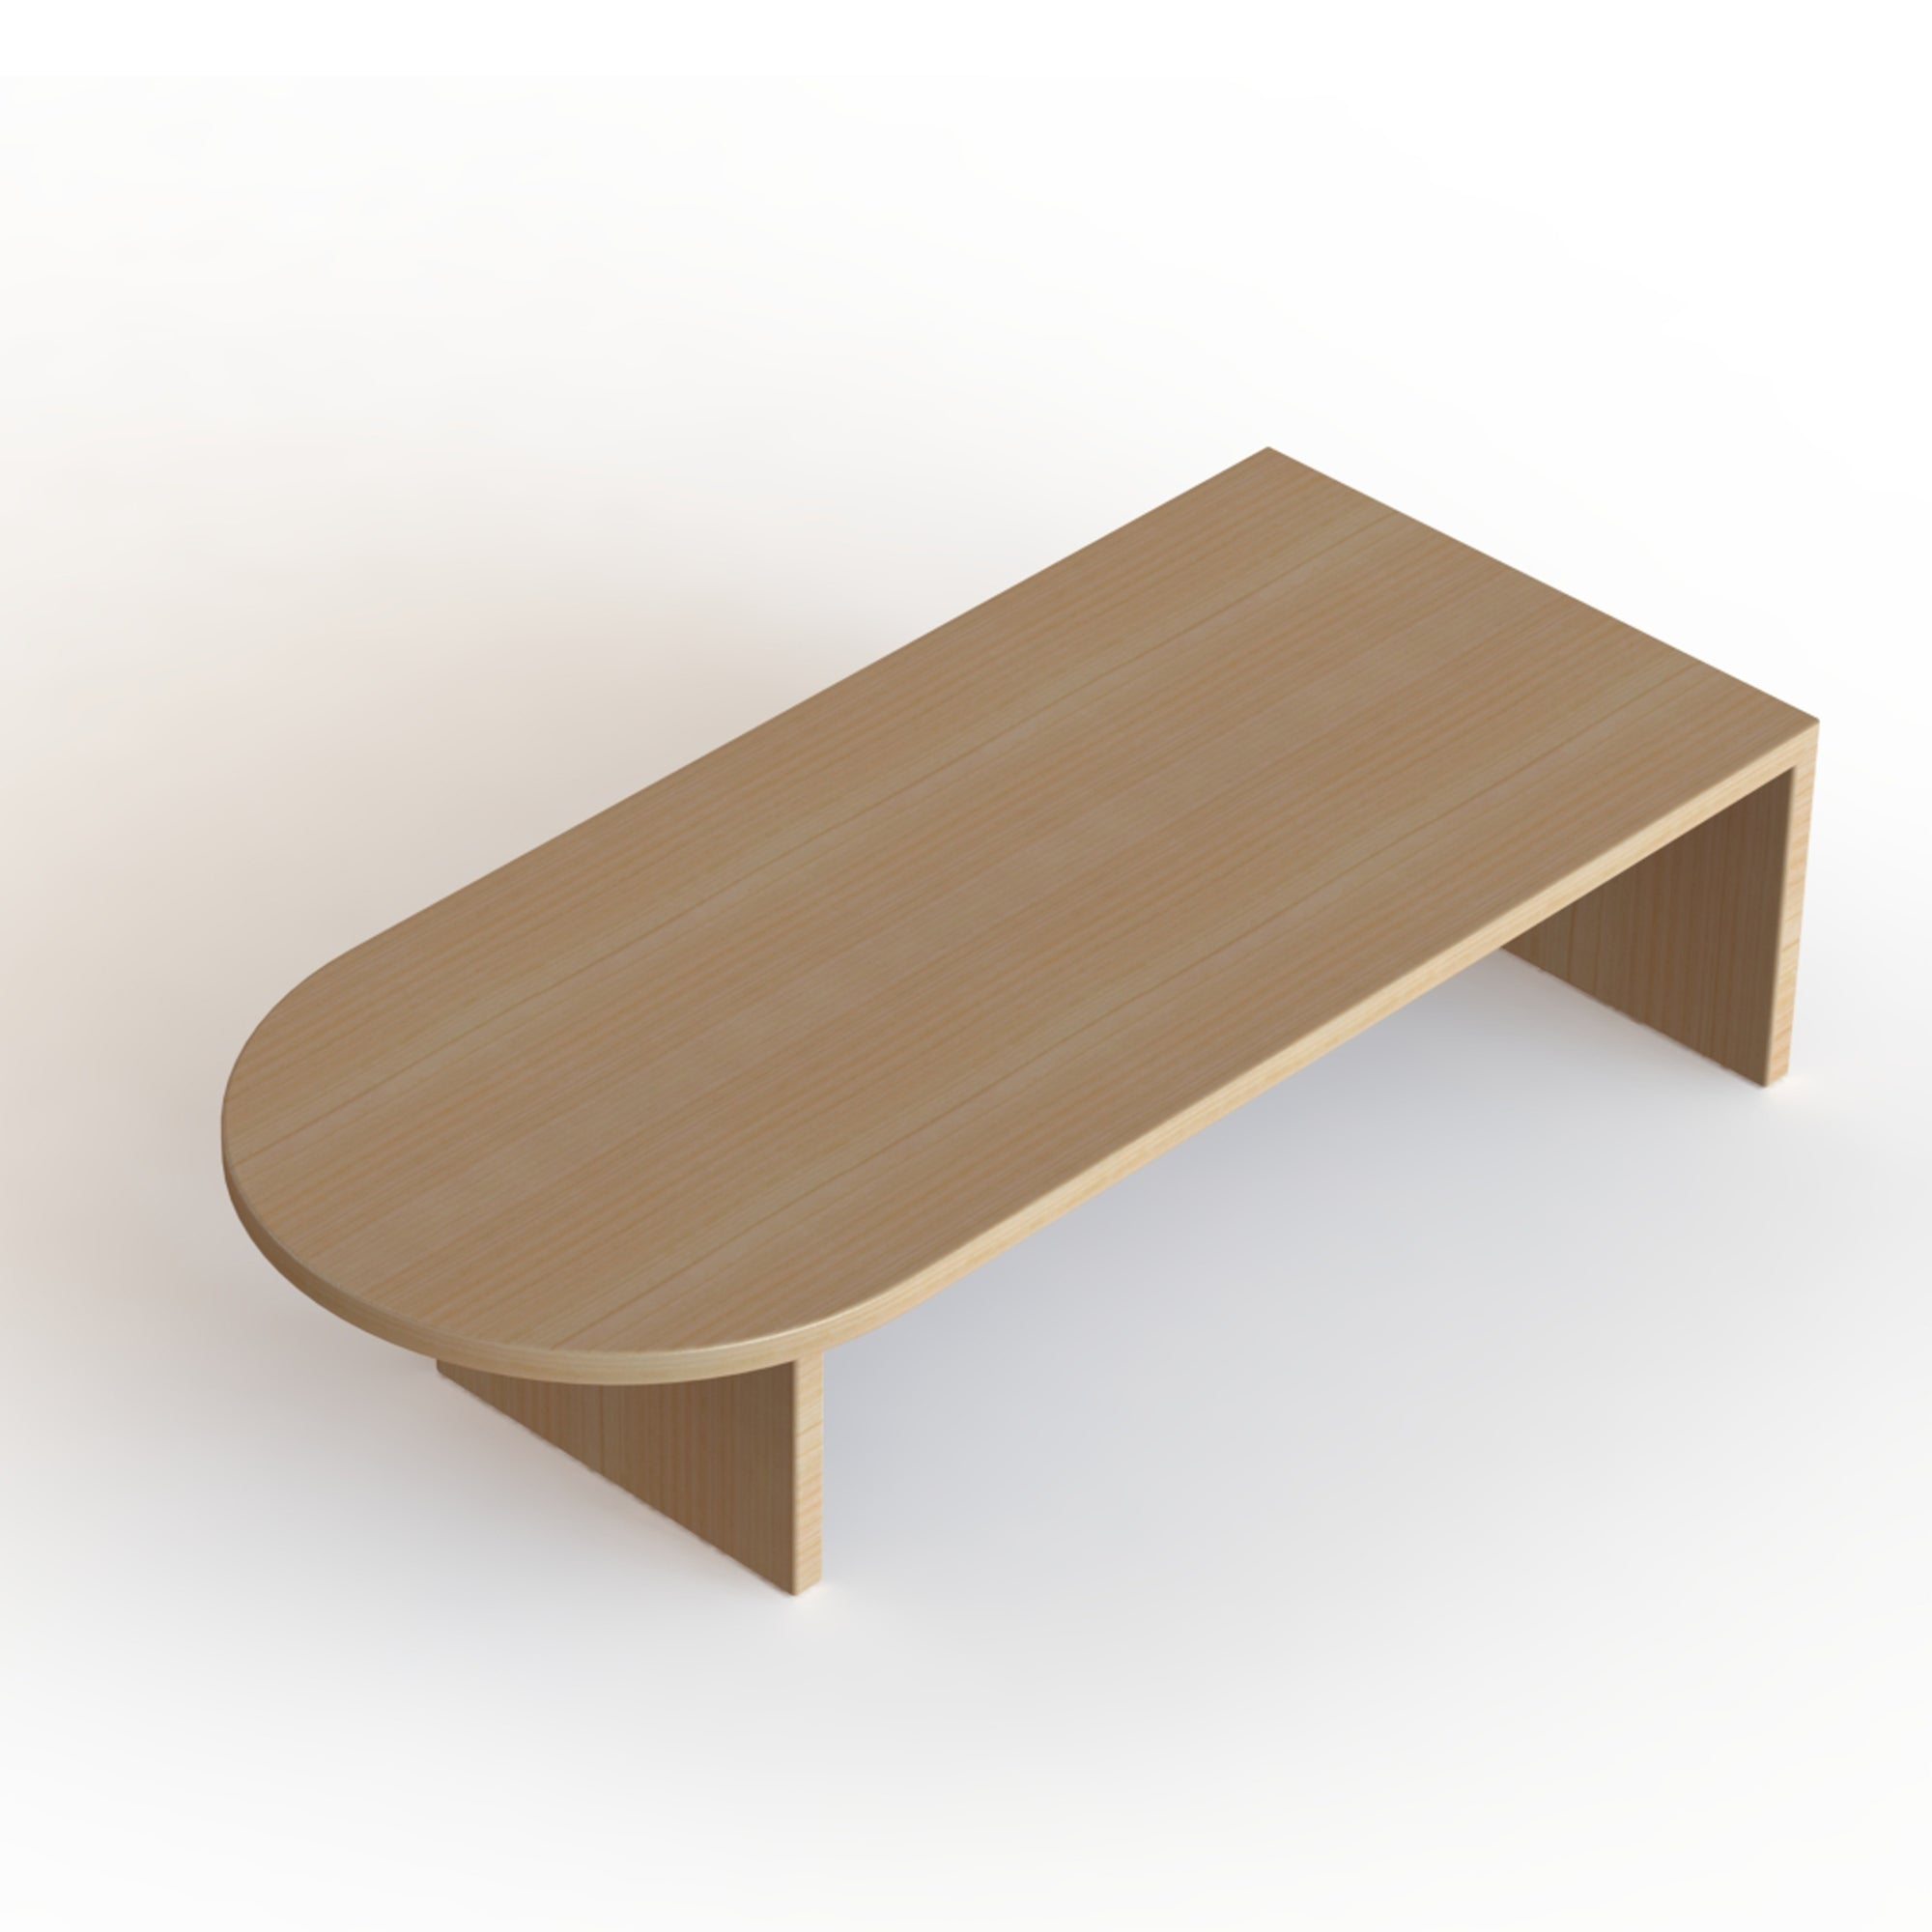 The Marc // Modern, Solid Wood Coffee Table with Drawer